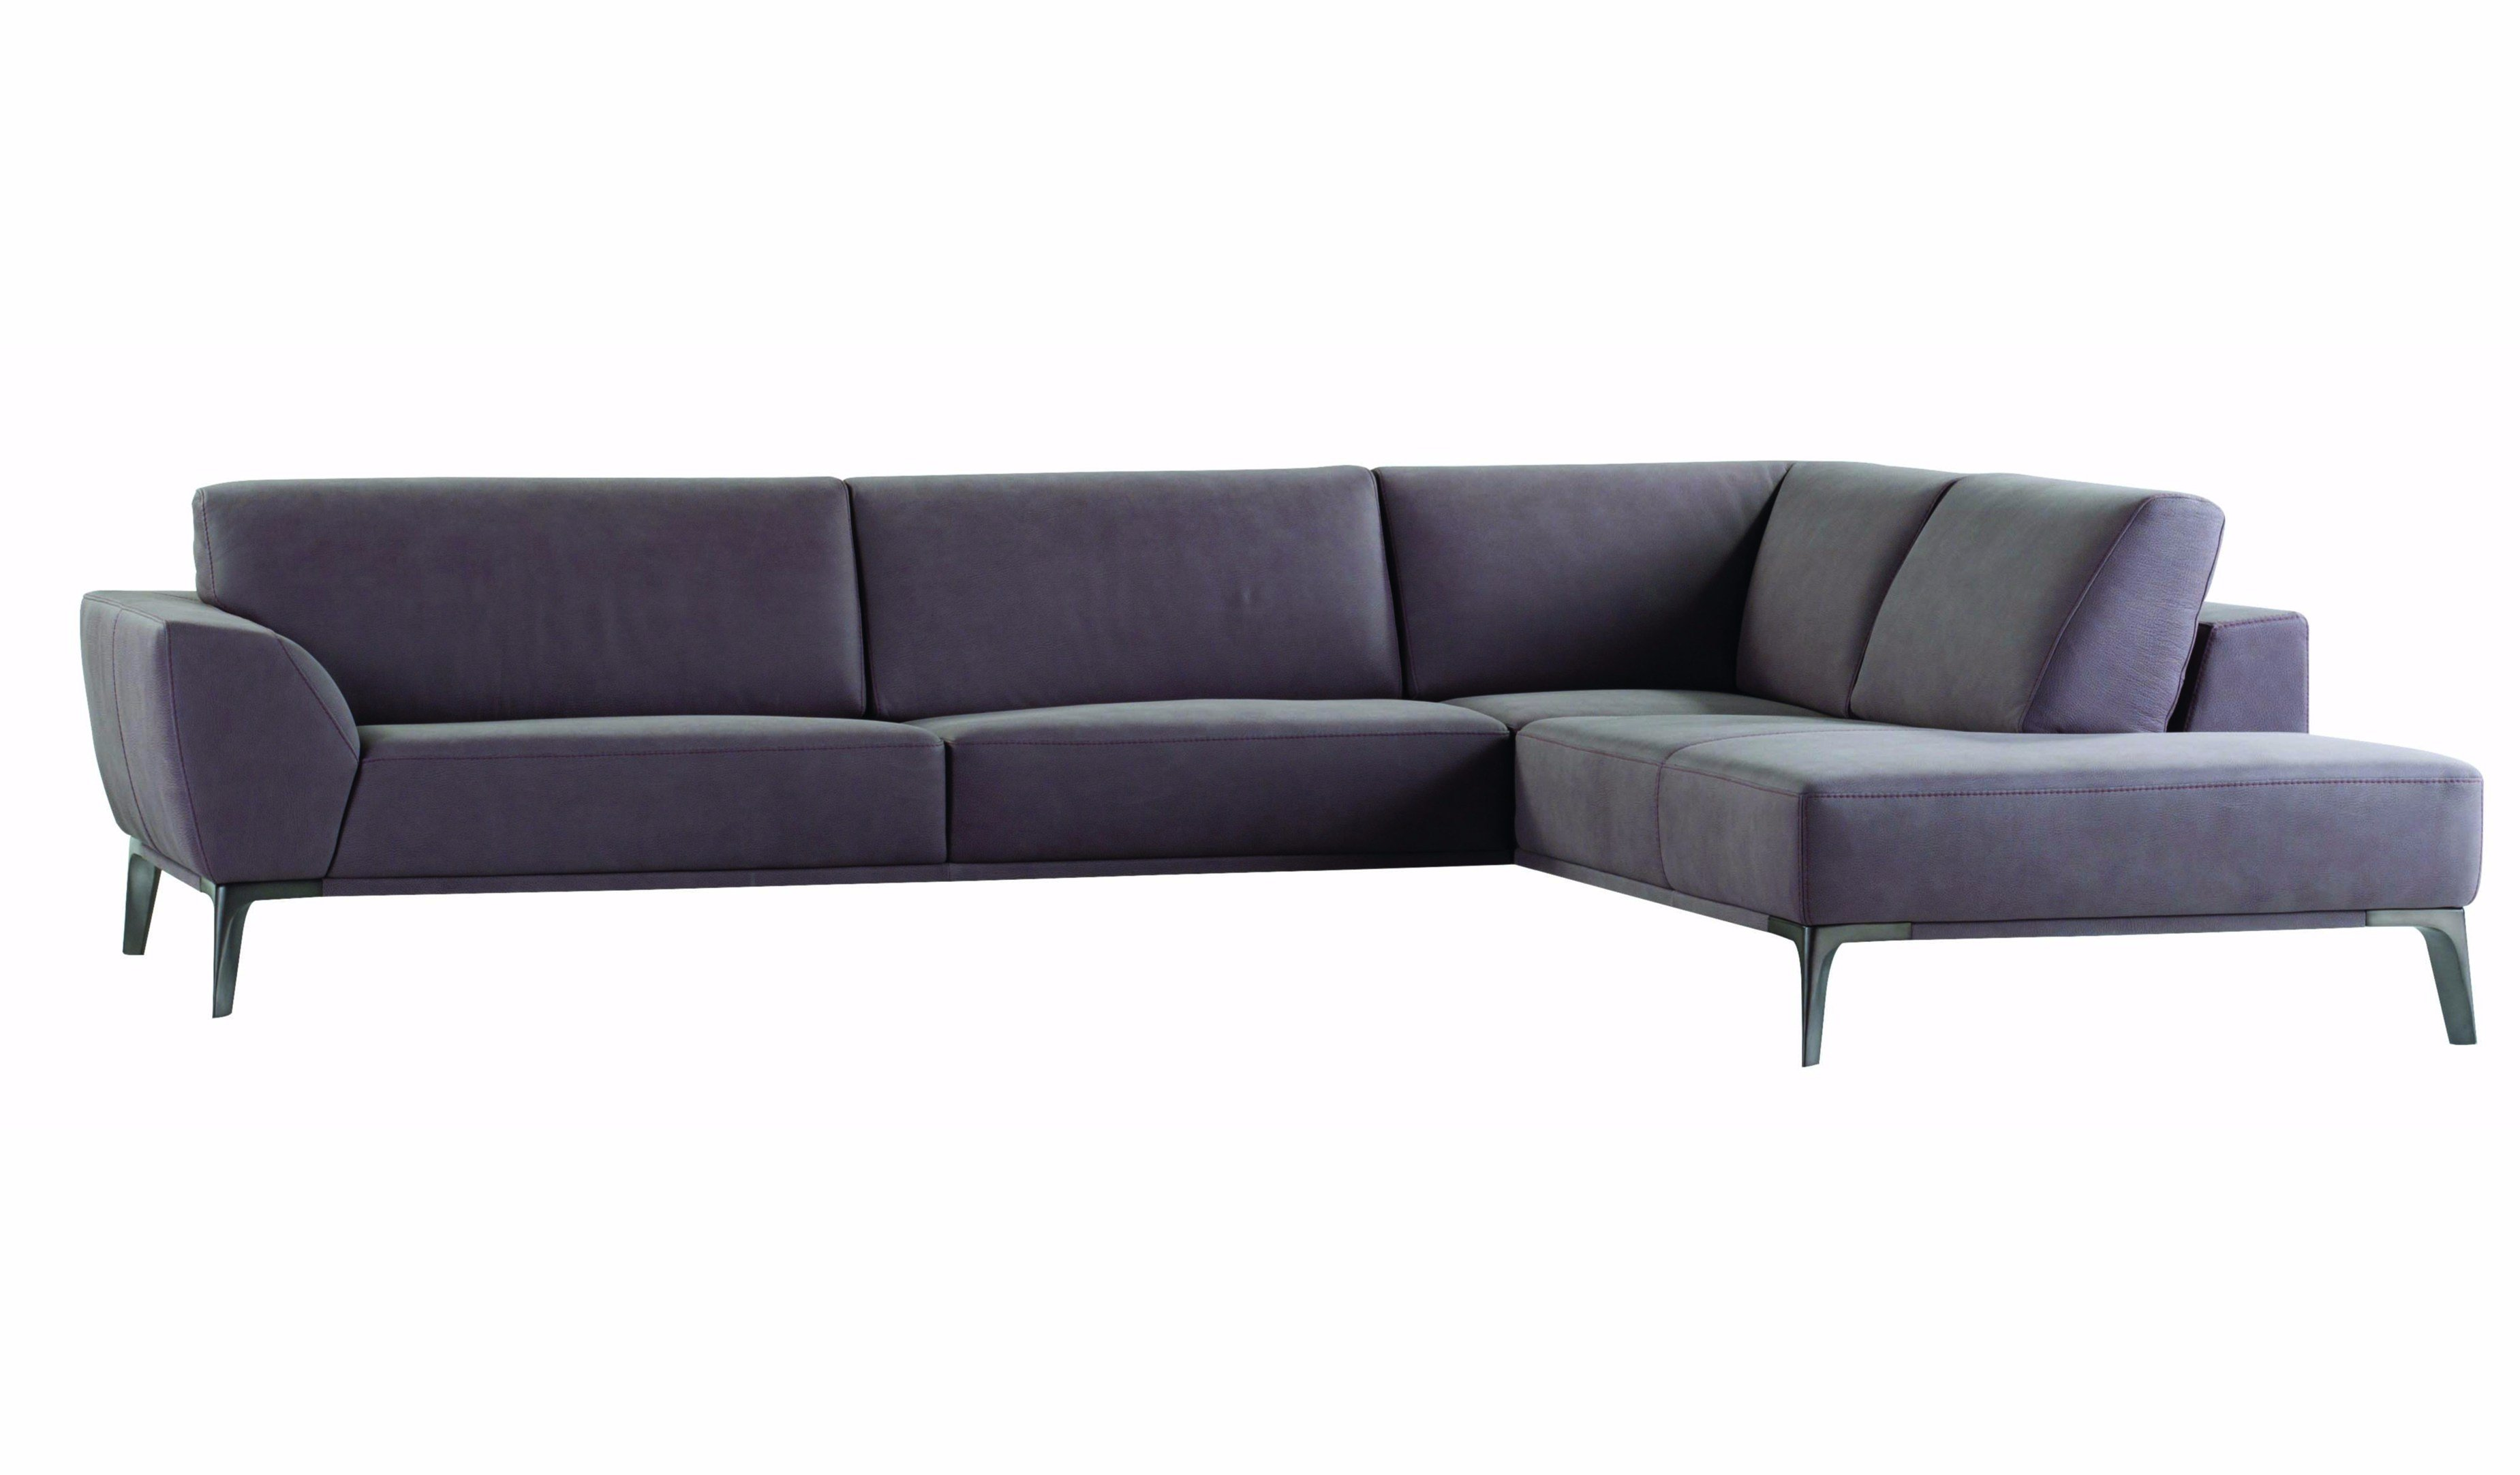 corner leather sofa meteore by roche bobois design sacha lakic. Black Bedroom Furniture Sets. Home Design Ideas